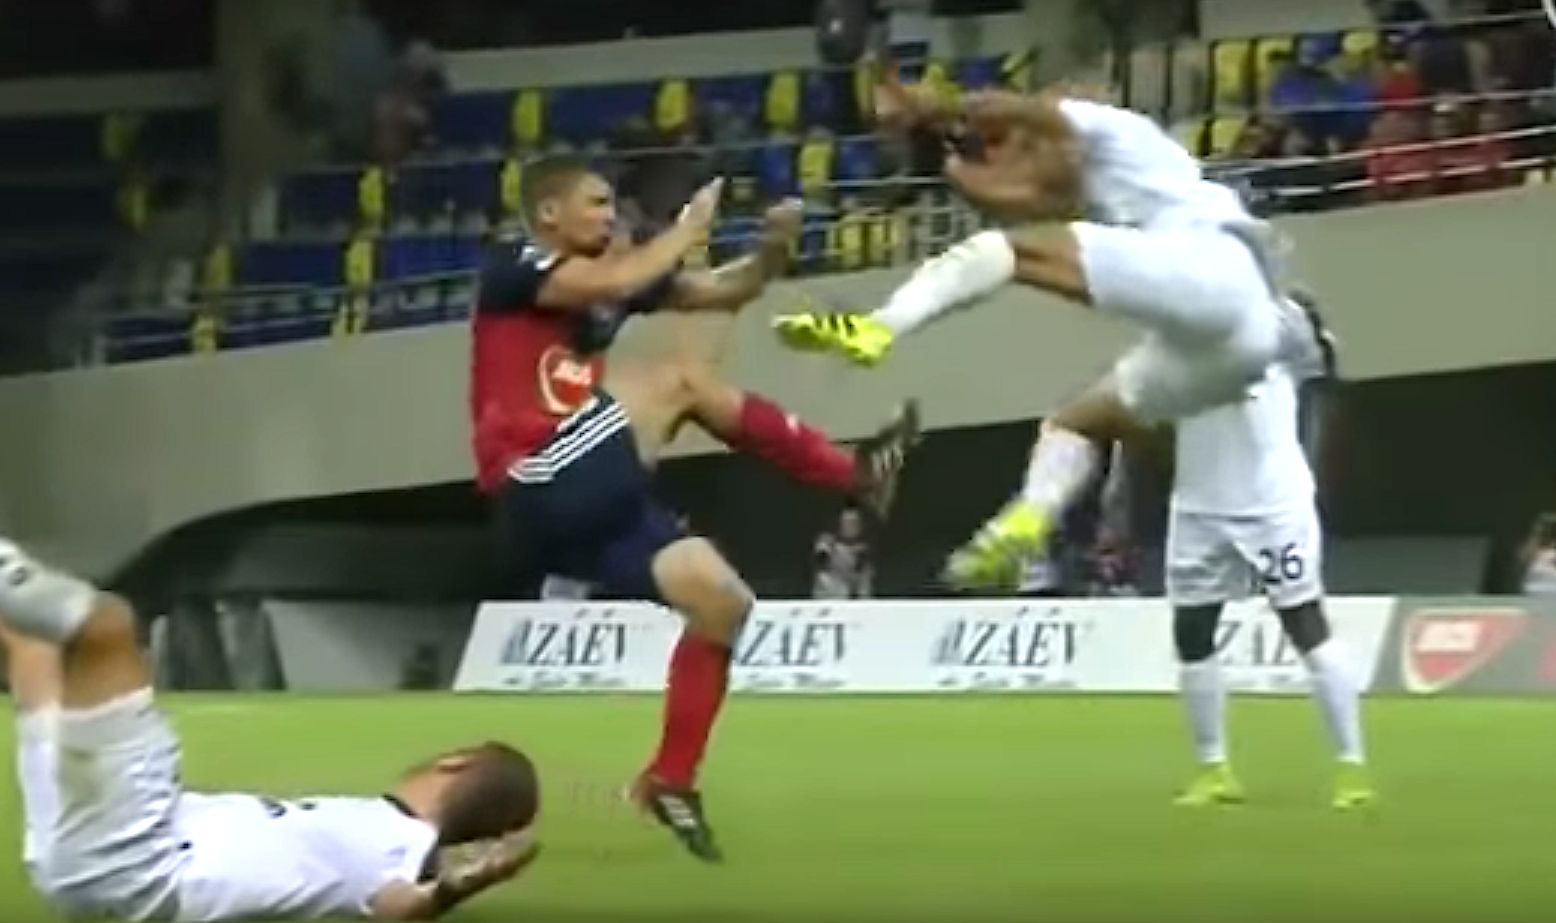 Soccer Player Sees Red After Brutal Drop Kick In Rival's